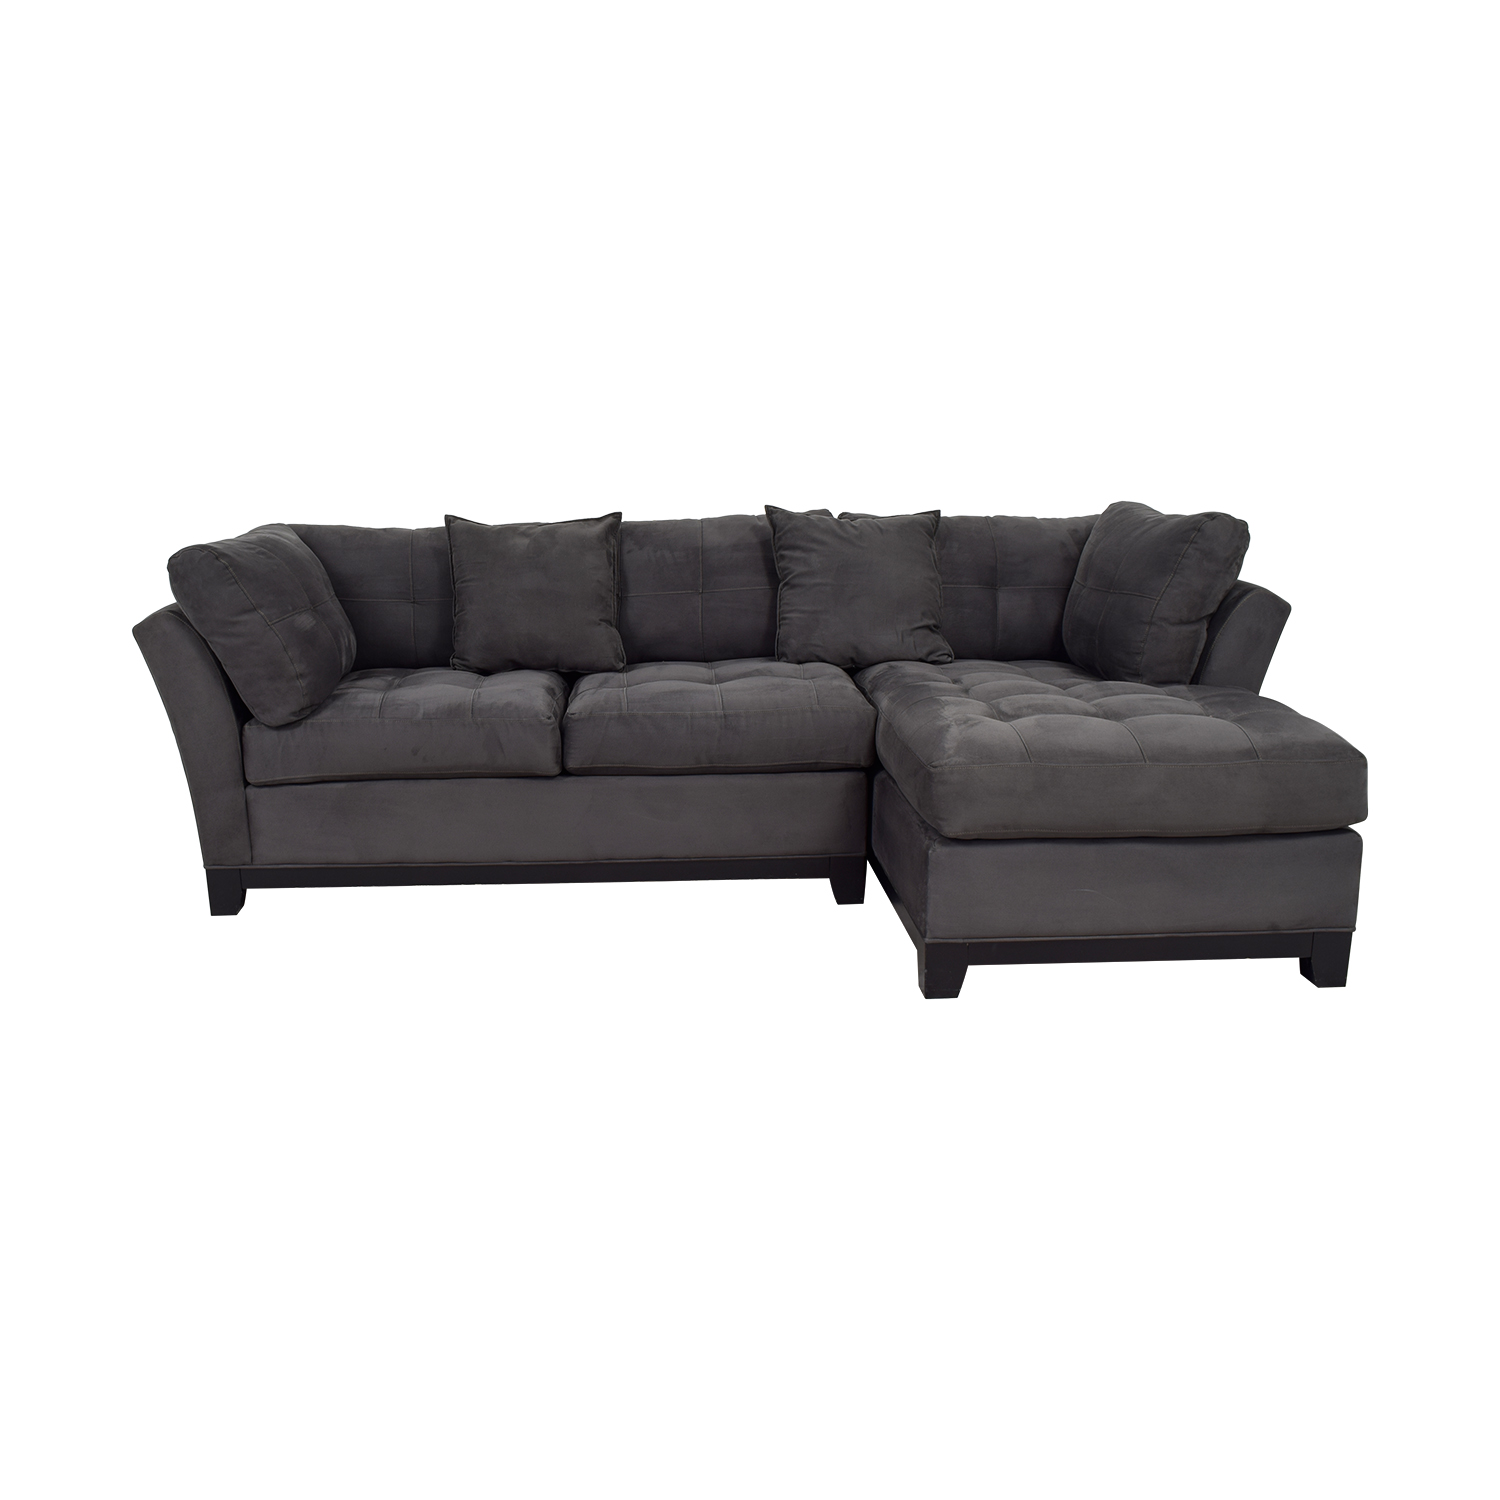 Raymour & Flanigan Raymour & Flanigan Cindy Crawford Grey Chaise Sectional on sale